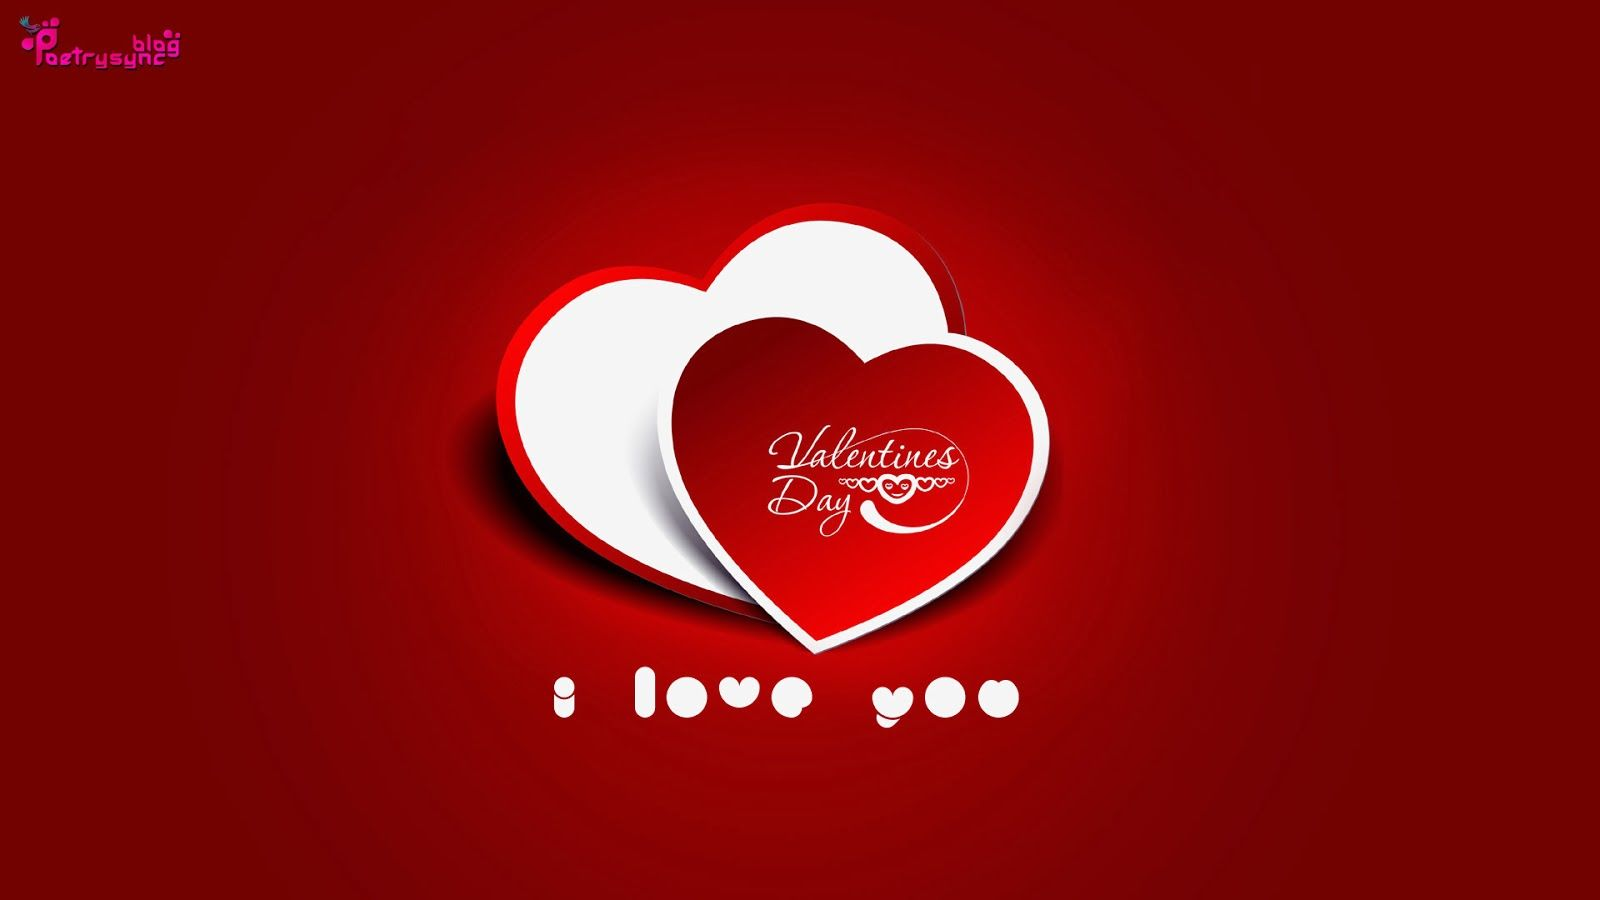 valentines day, i love you wallpaper pictures, photos, and images